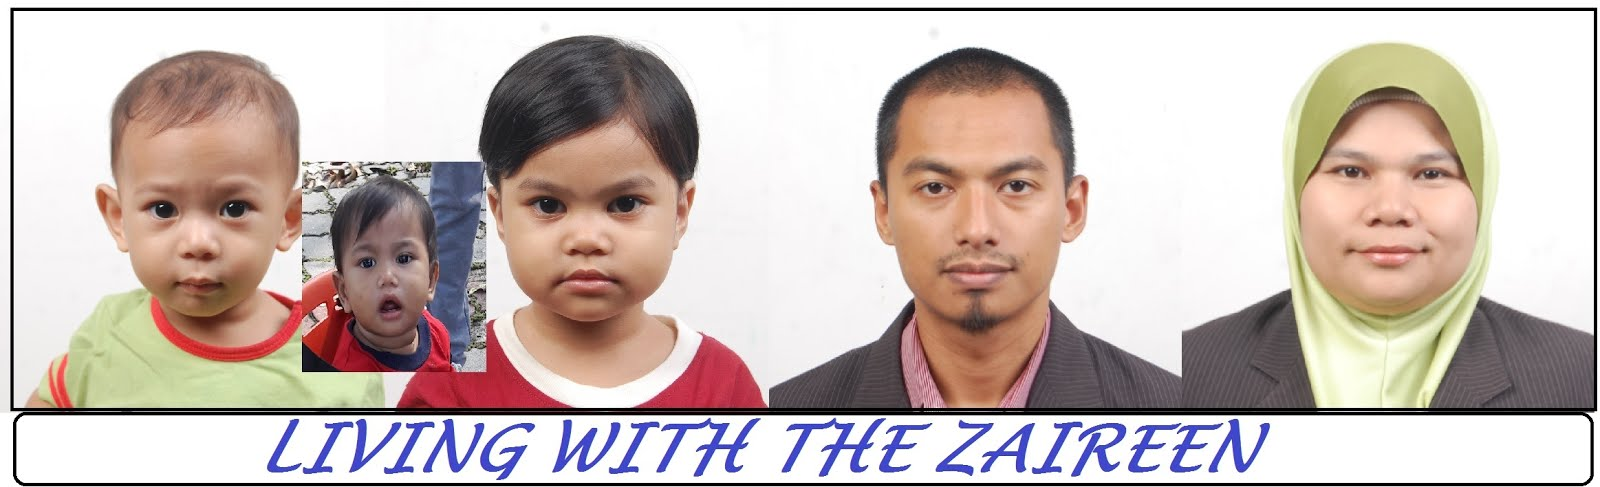 LIVING WITH THE ZAIREEN